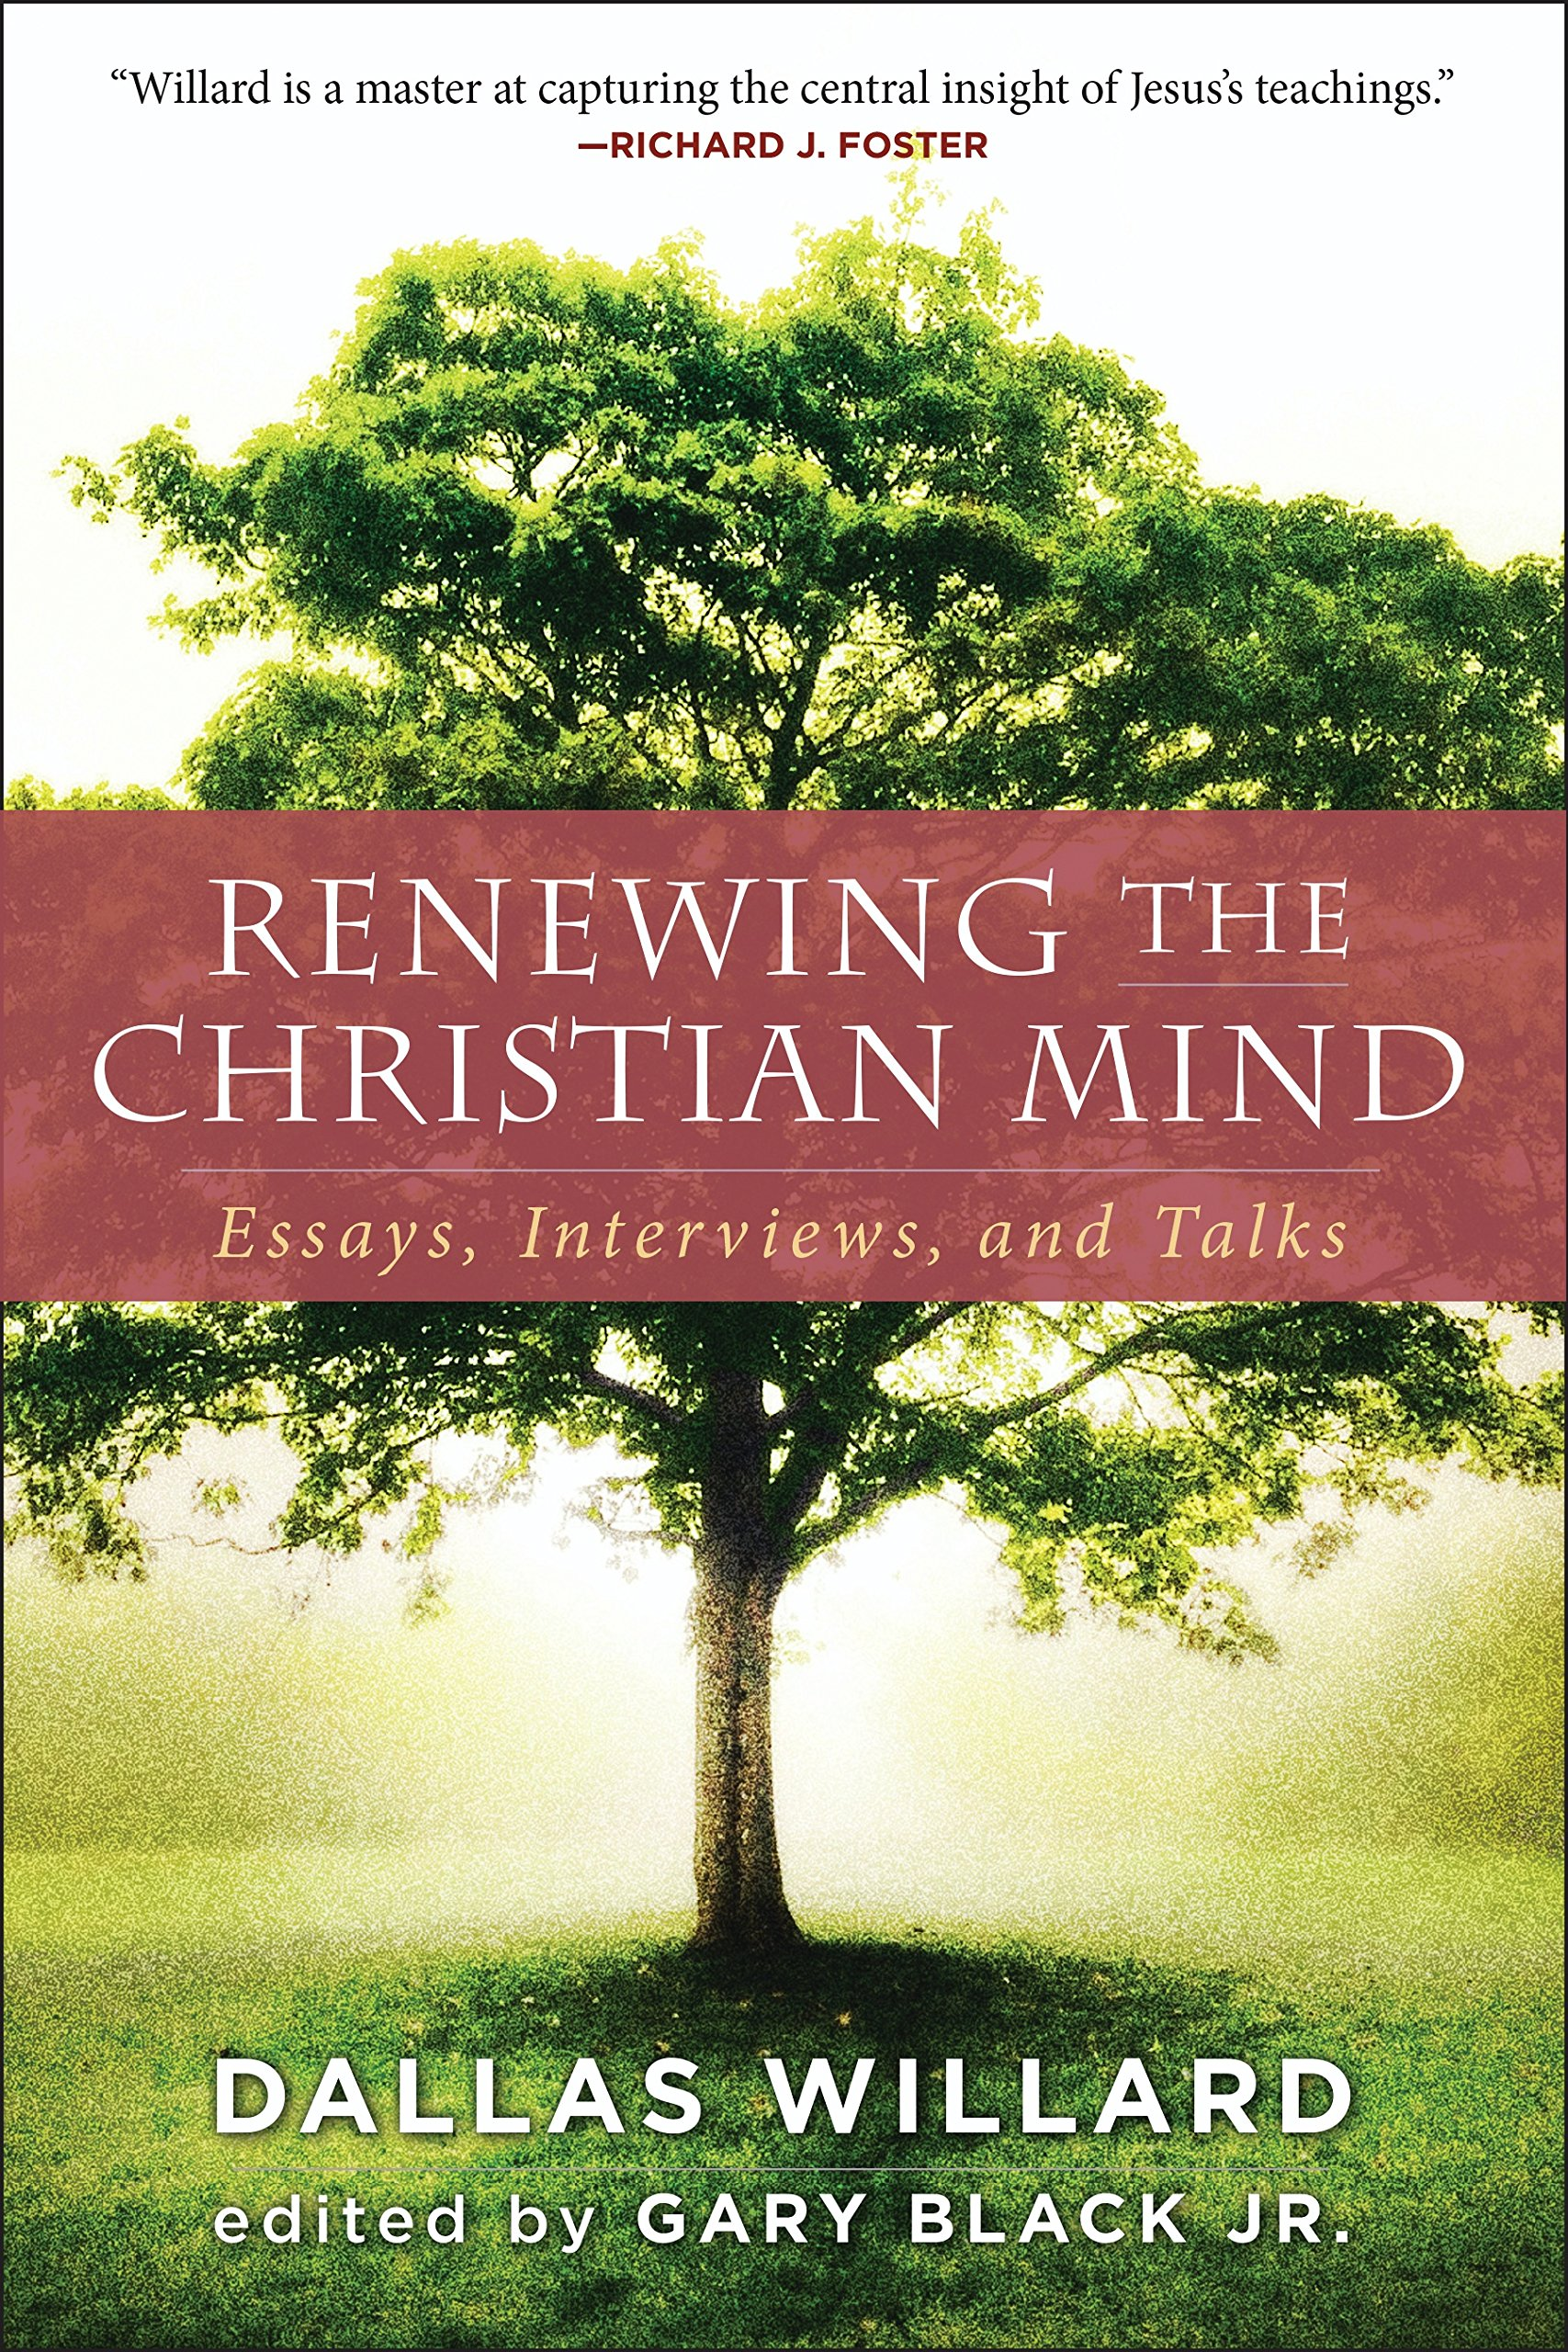 renewing the christian mind essays interviews and talks dallas renewing the christian mind essays interviews and talks dallas willard gary jr black 9780062296139 amazon com books